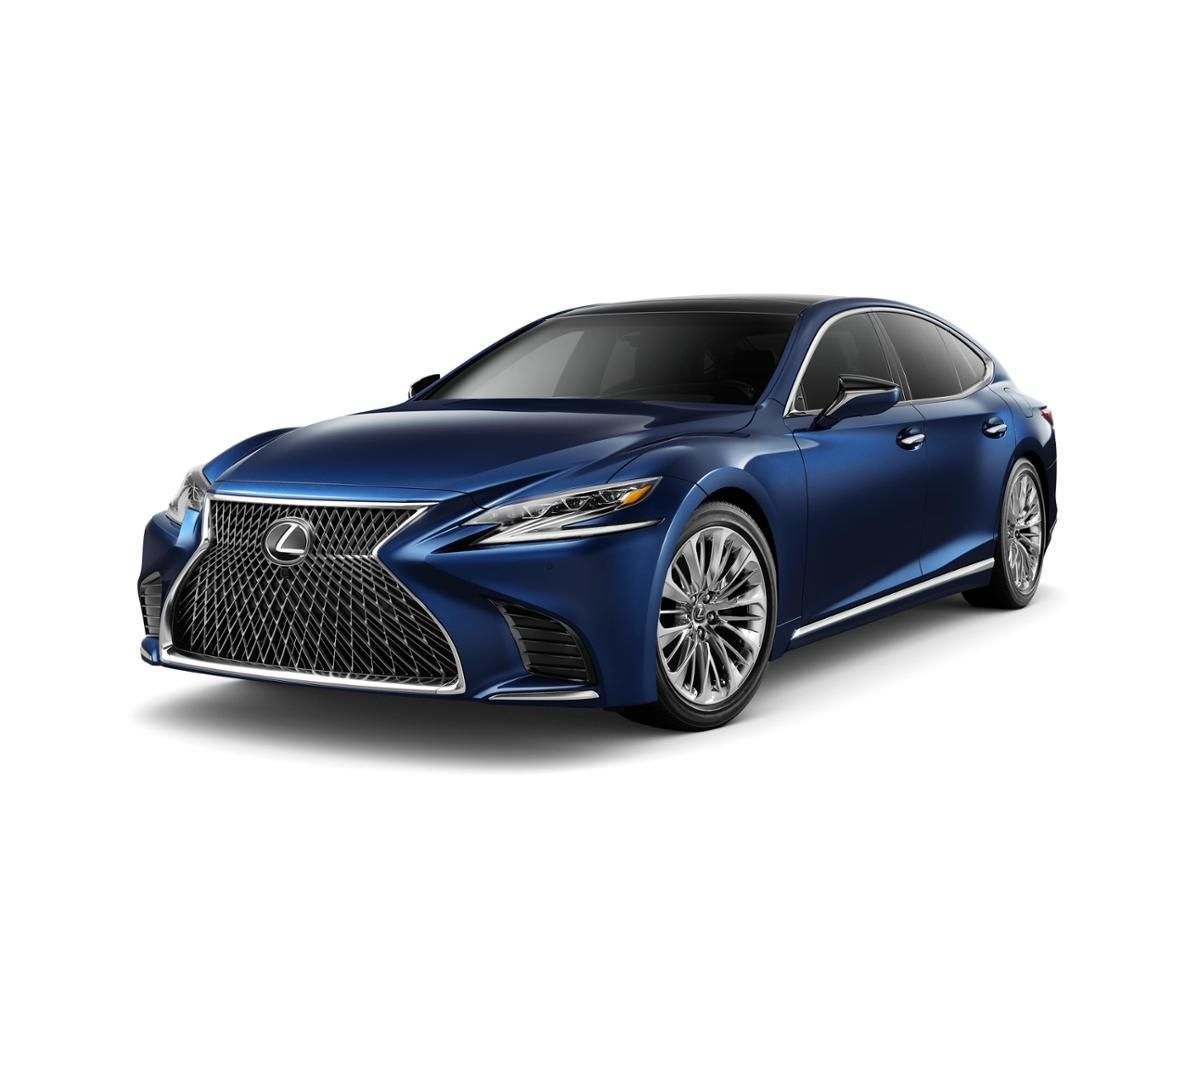 2018 Lexus LS 500 Vehicle Photo in Larchmont, NY 10538